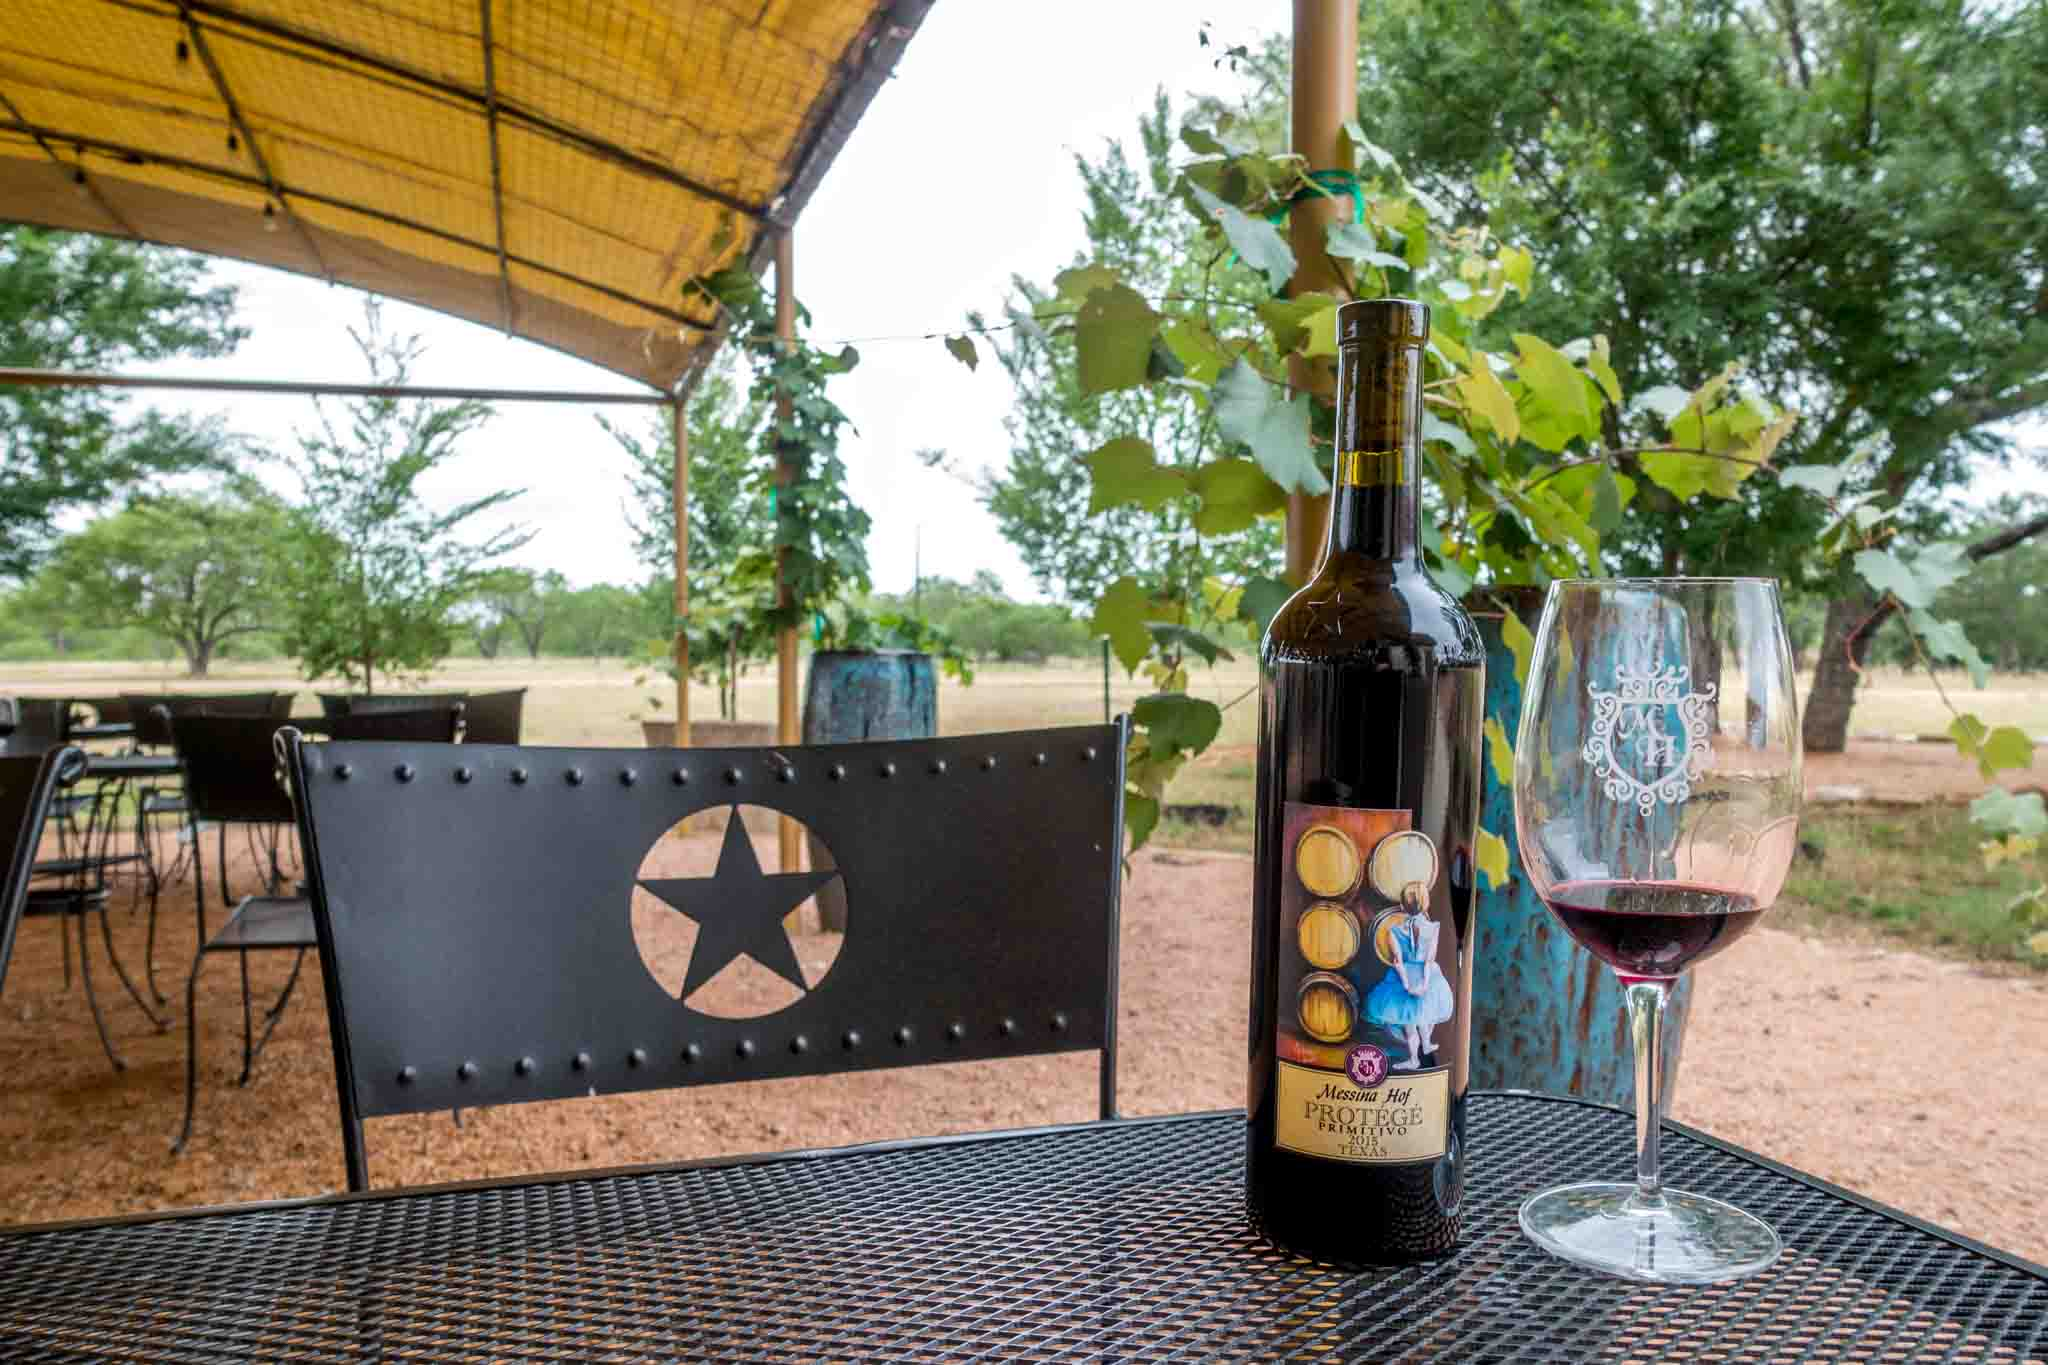 Wine on the patio at Messina Hof Hill Country